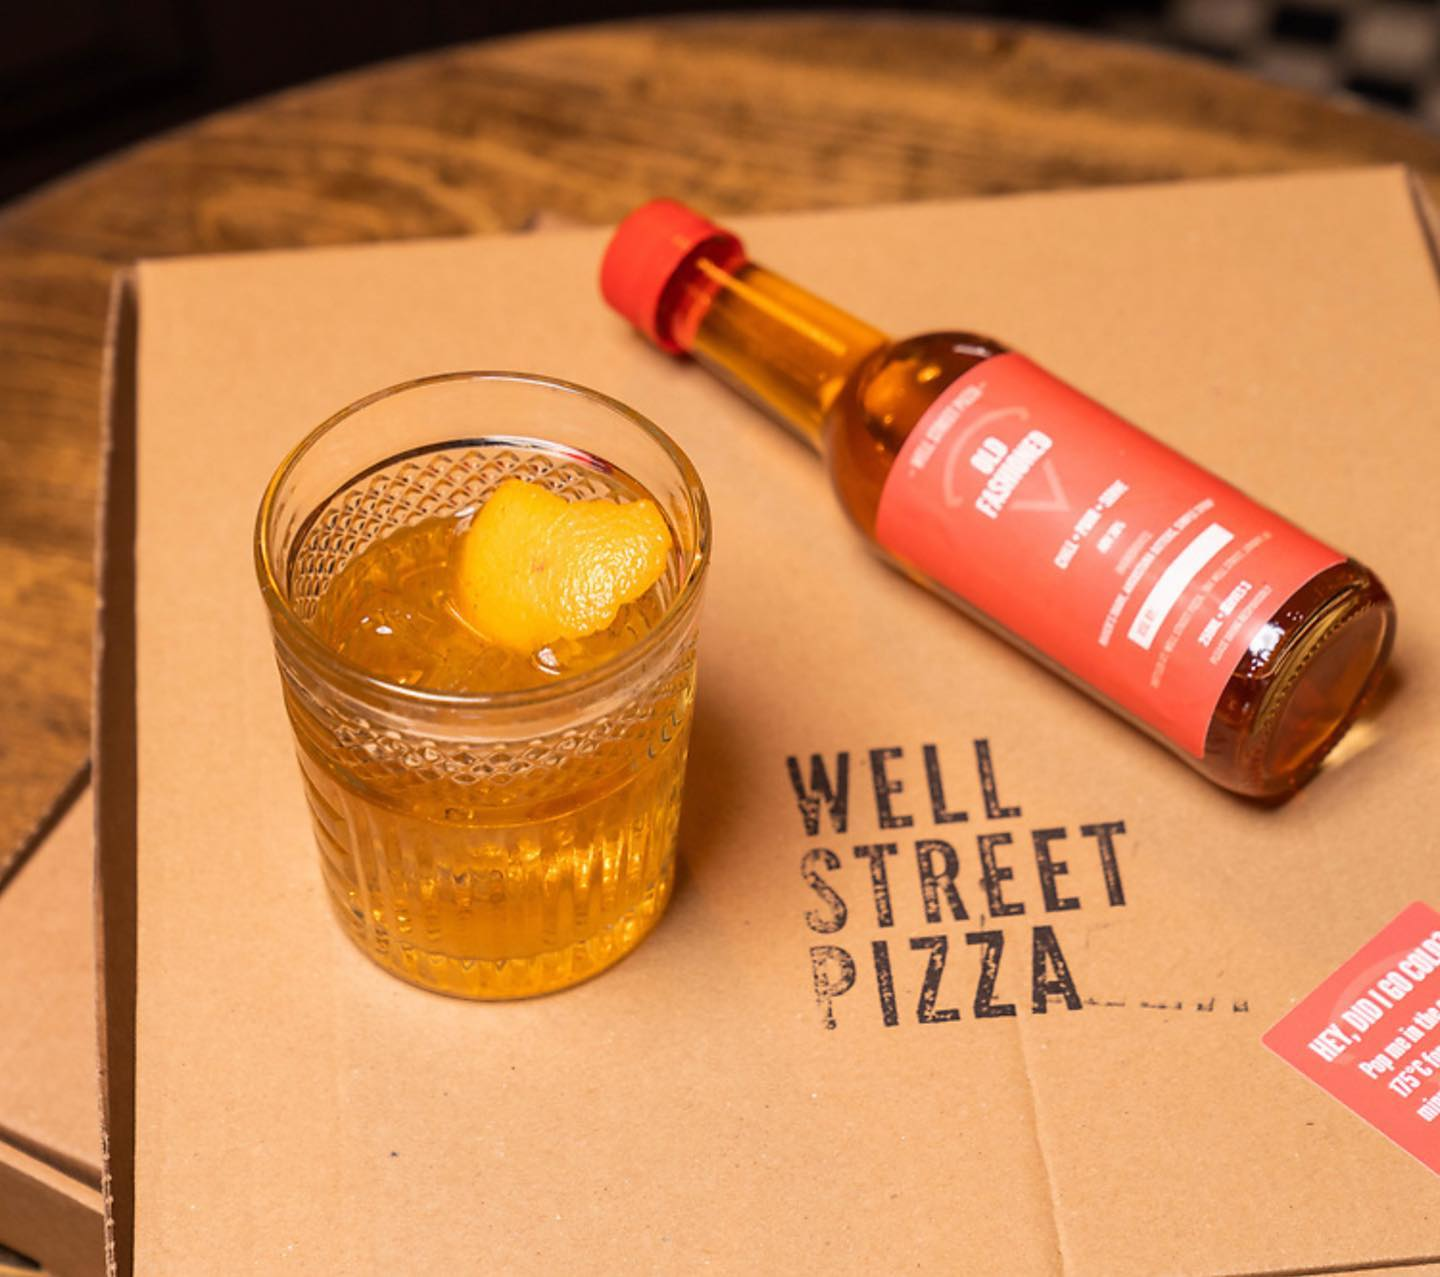 Wednesdays are for old fashioneds and pizza 🥃🍕 . . . #pizza #cocktails #youwantapizzame #hackney #delivery #takeaway @makersmark #oldfashioned